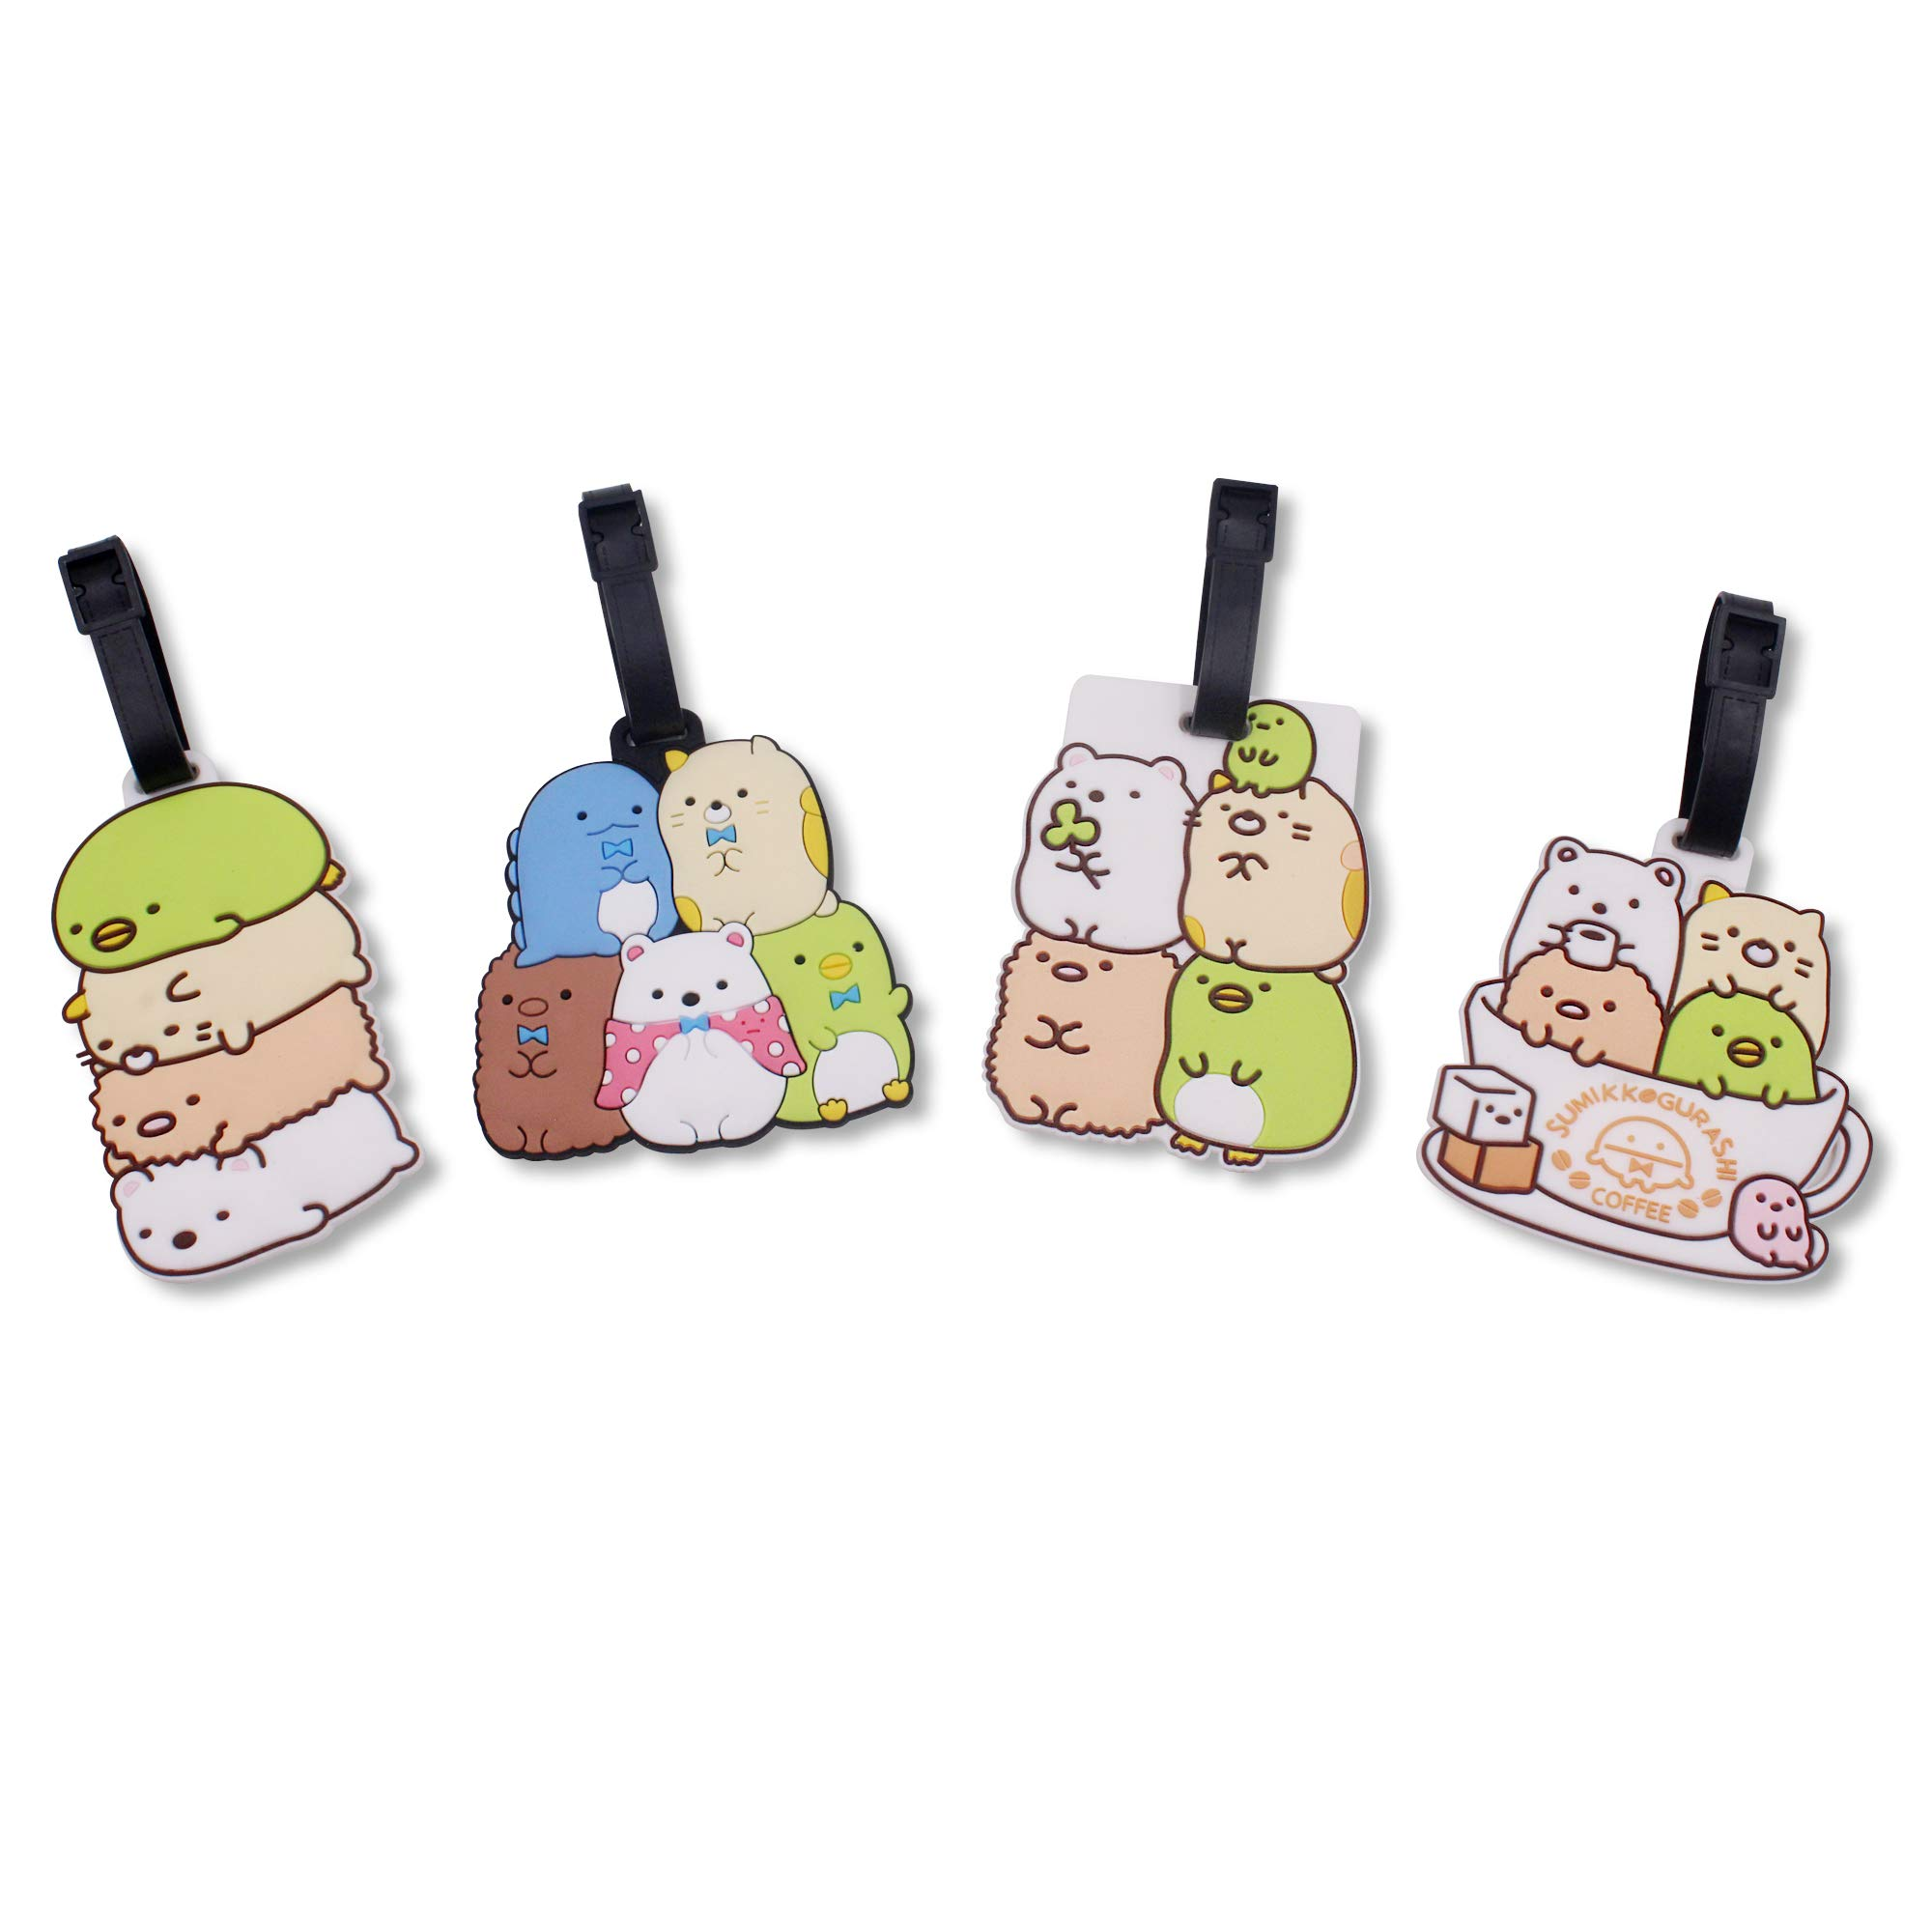 Finex Set of 4 San-X Sumikko Gurashi Things in The Corner Travel Luggage Baggage Identification Labels ID Tag for Bag Suitcase Plane Cruise Ships with Adjustable Strap by FINEX